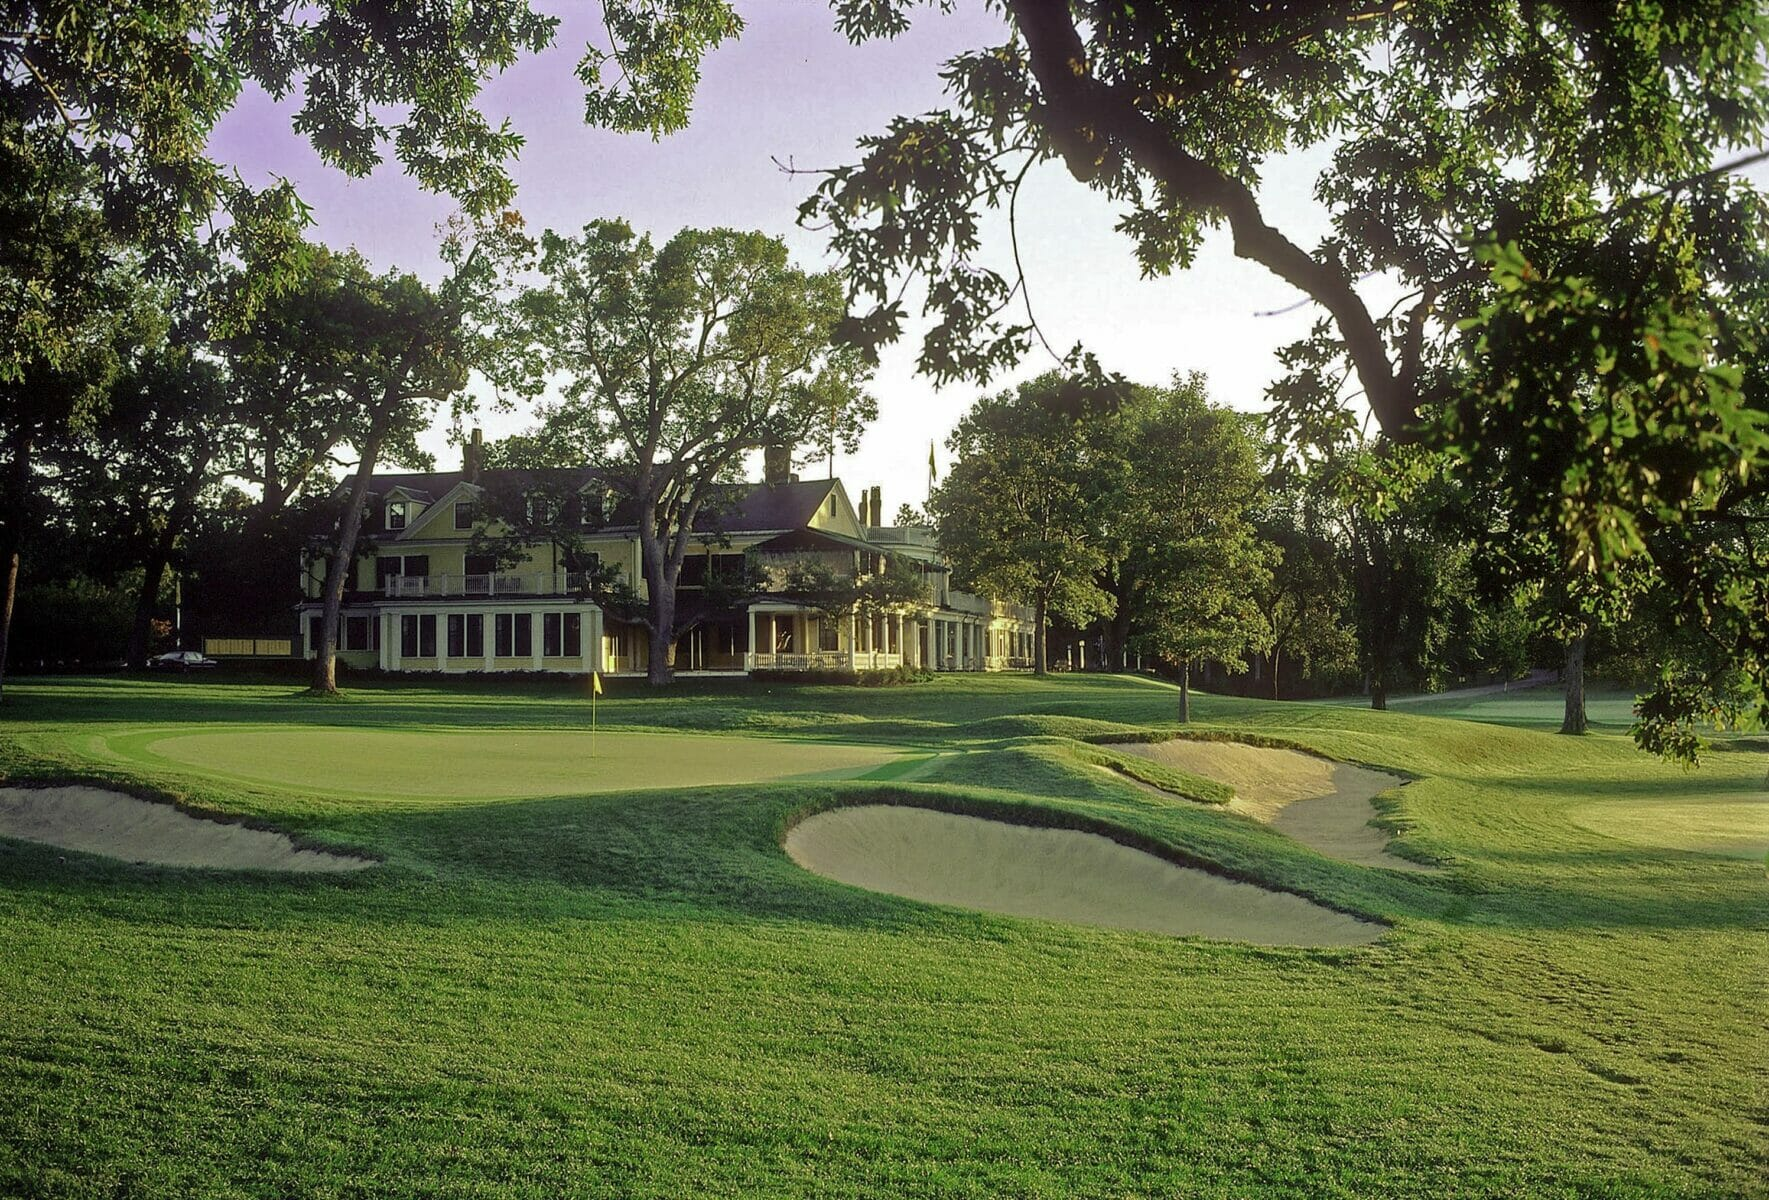 The Country Club Massachusetts